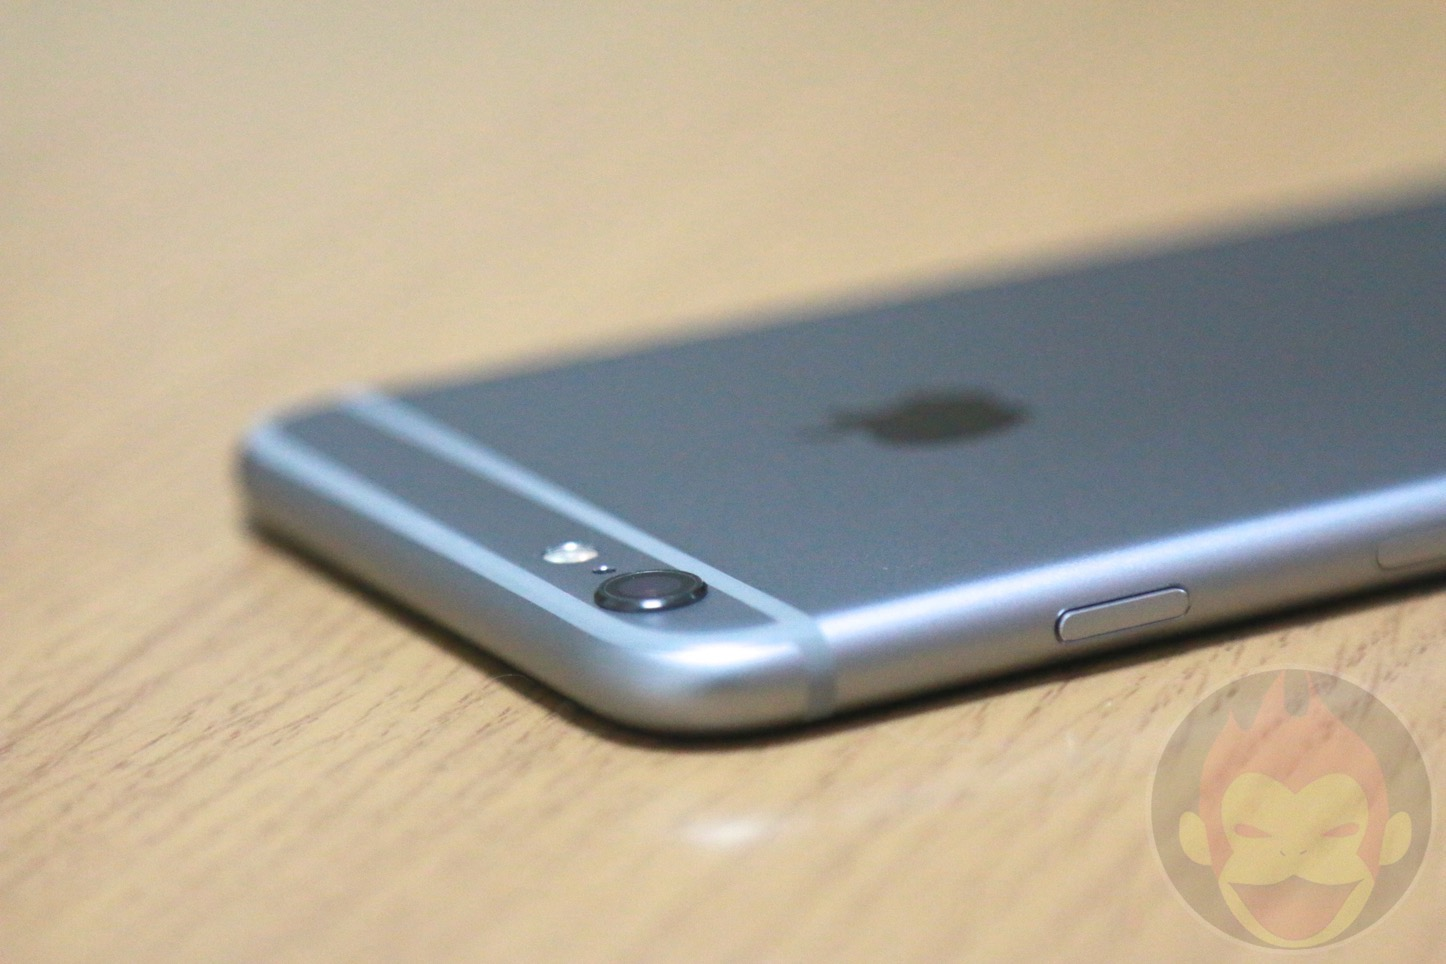 iPhone-6s-Plus-Photo-Review-14.jpg